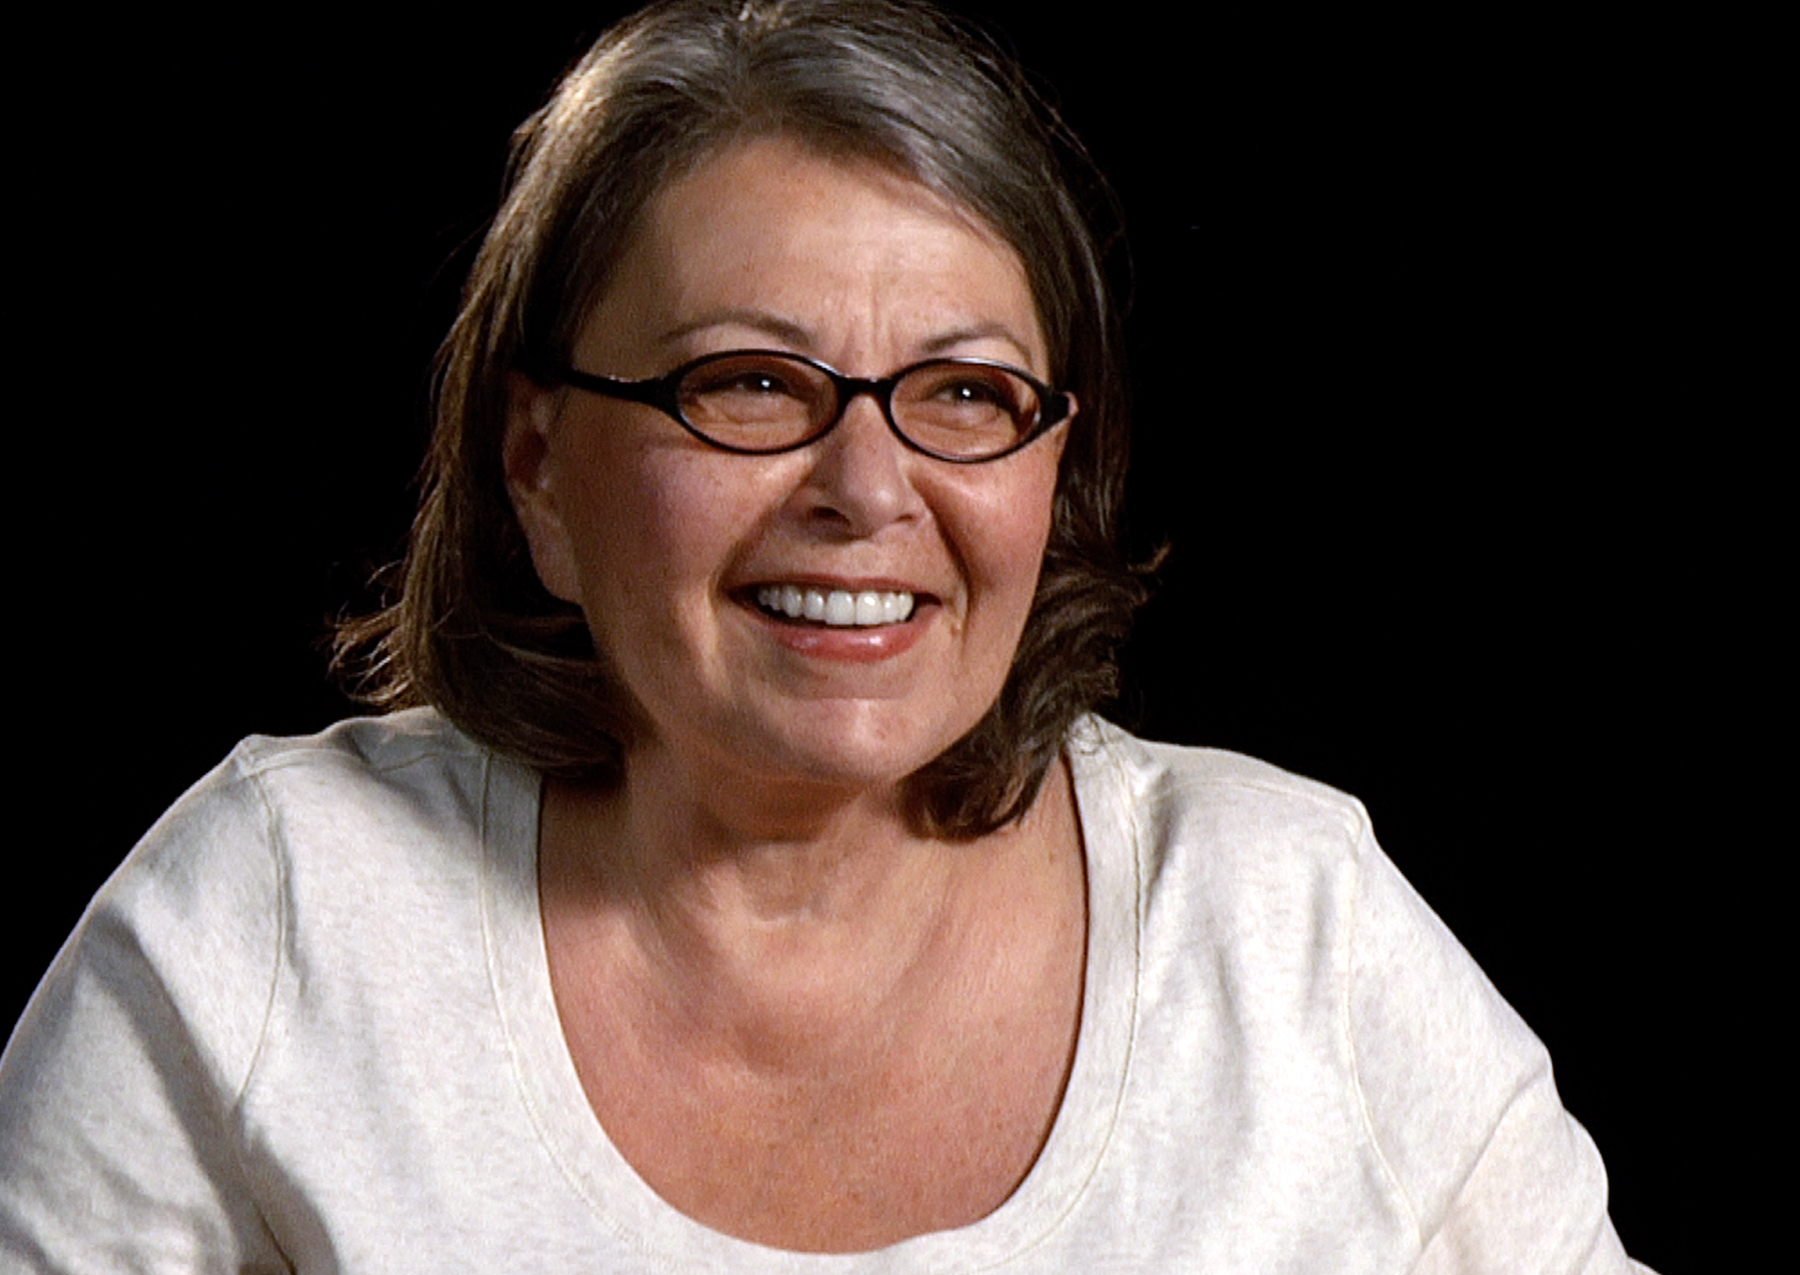 Roseanne Barr Wants 'To Move To Israel And Run For Prime Minister'